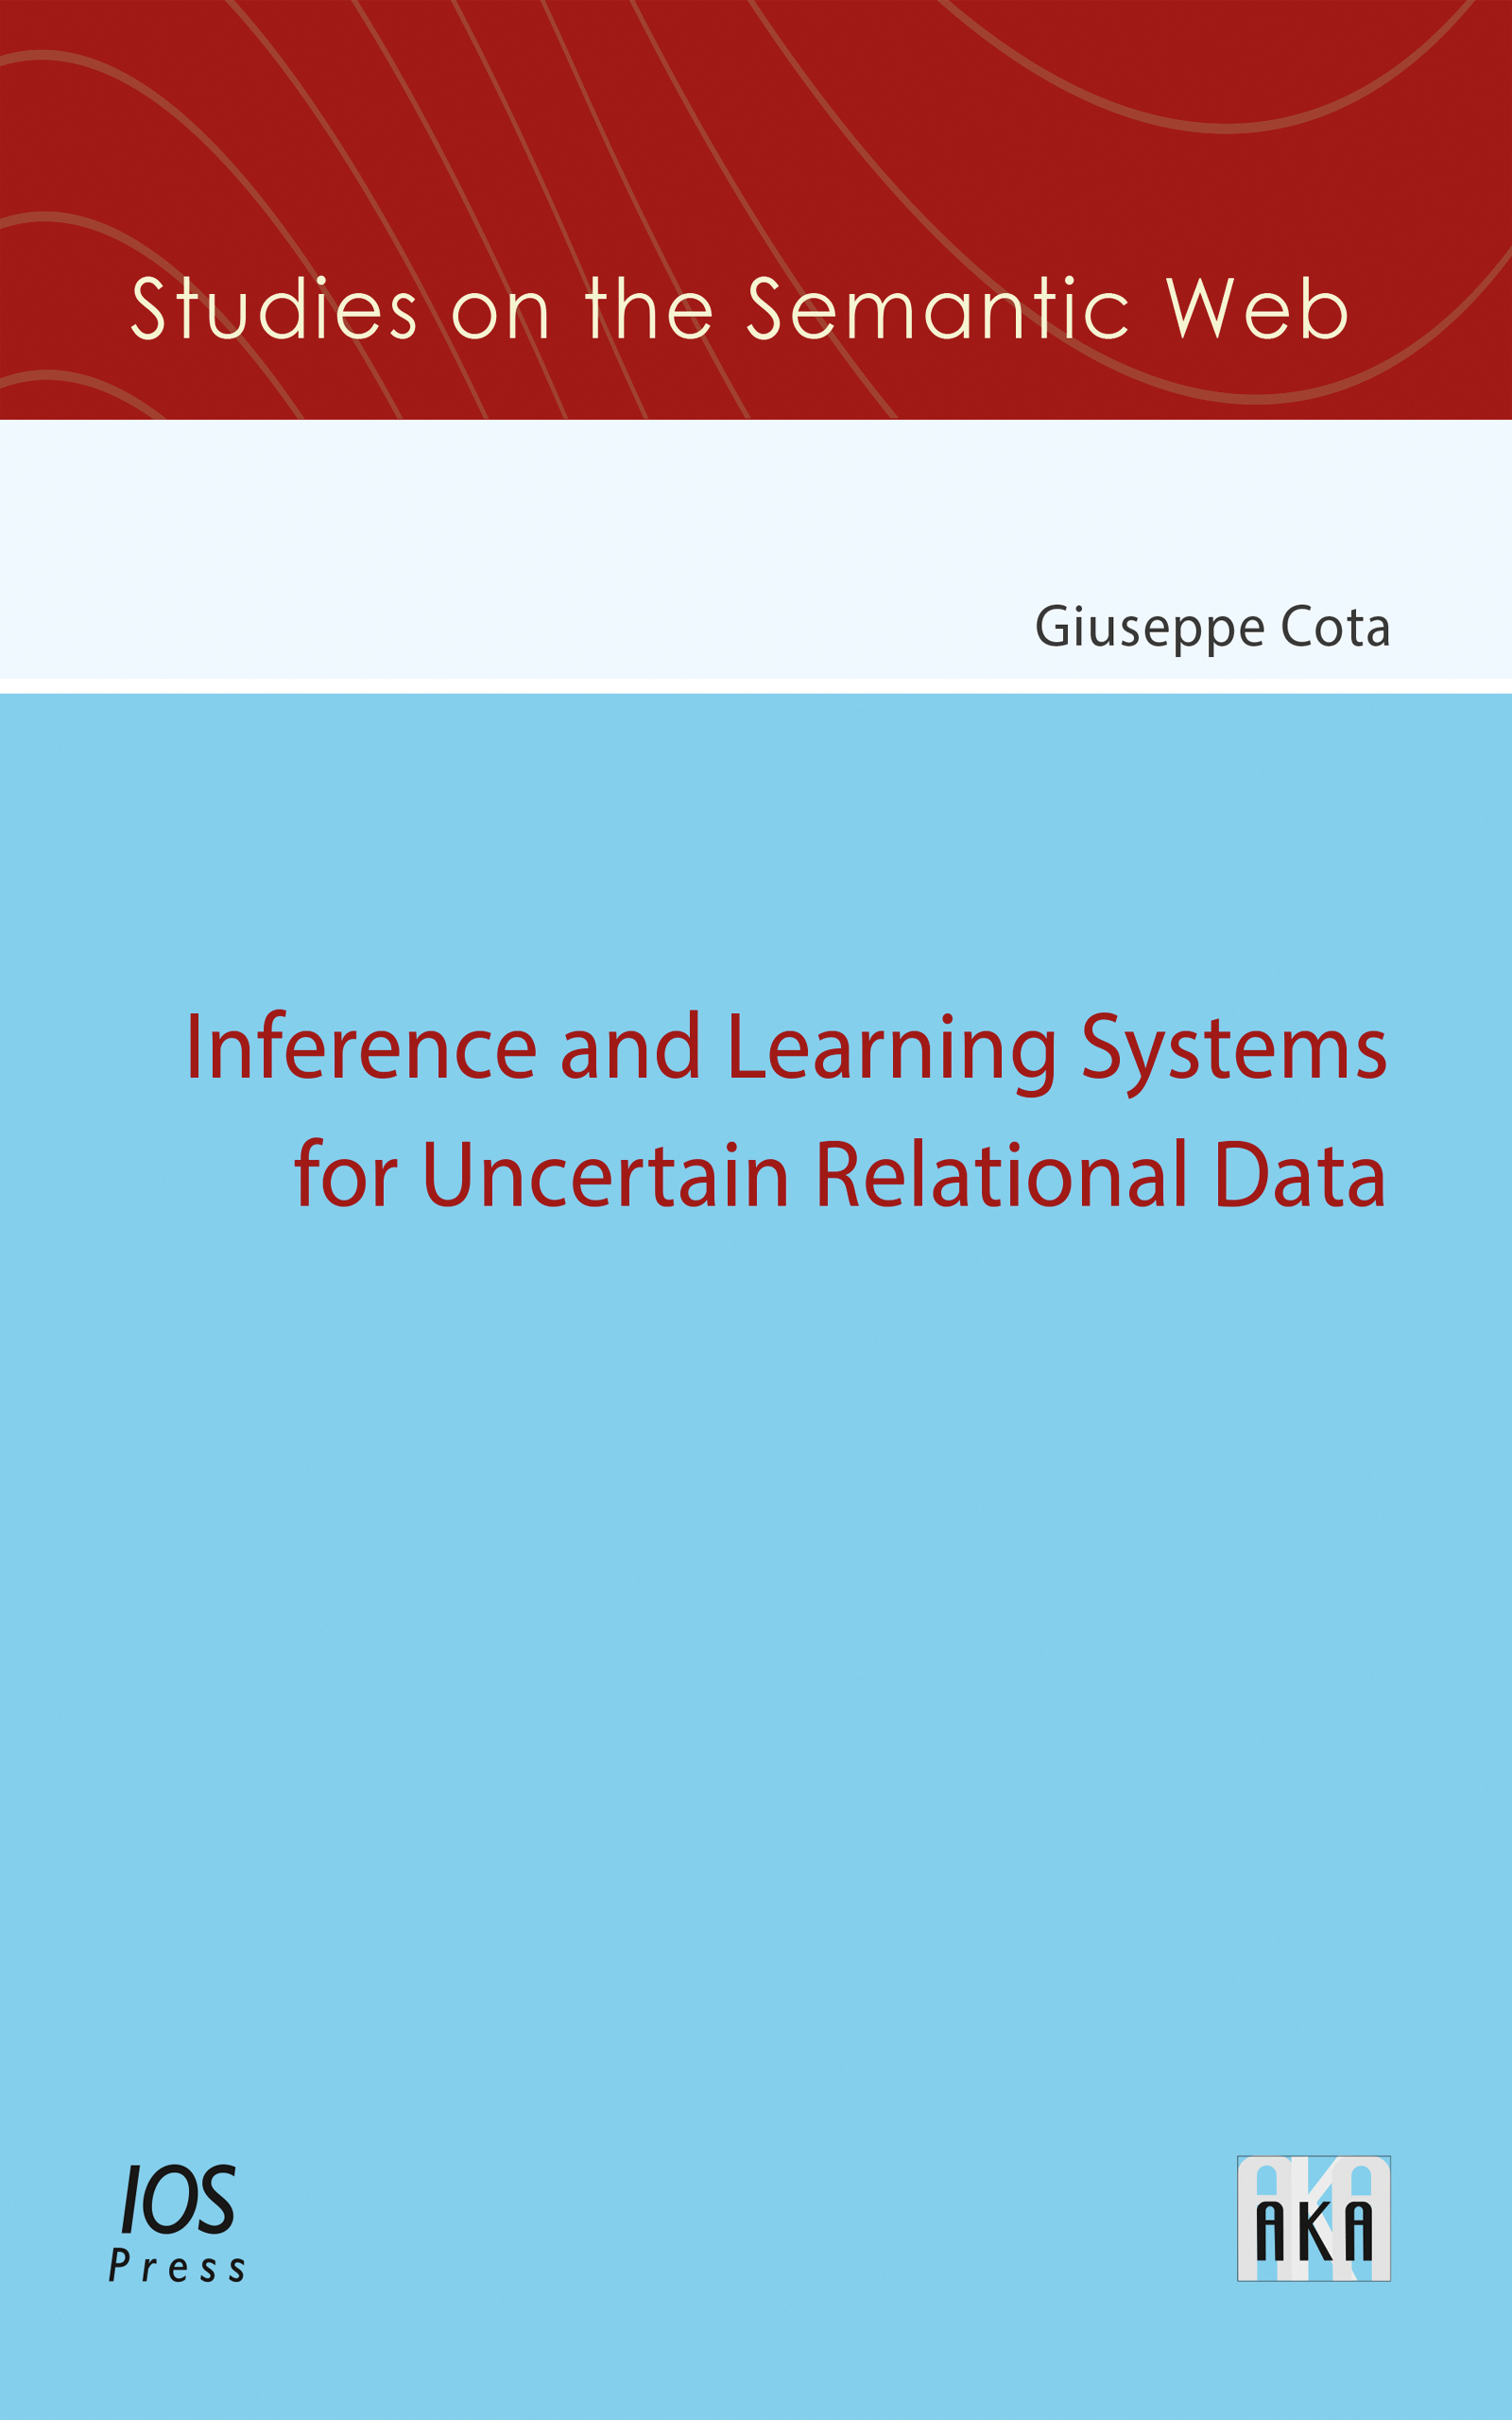 Inference and Learning Systems for Uncertain Relational Data